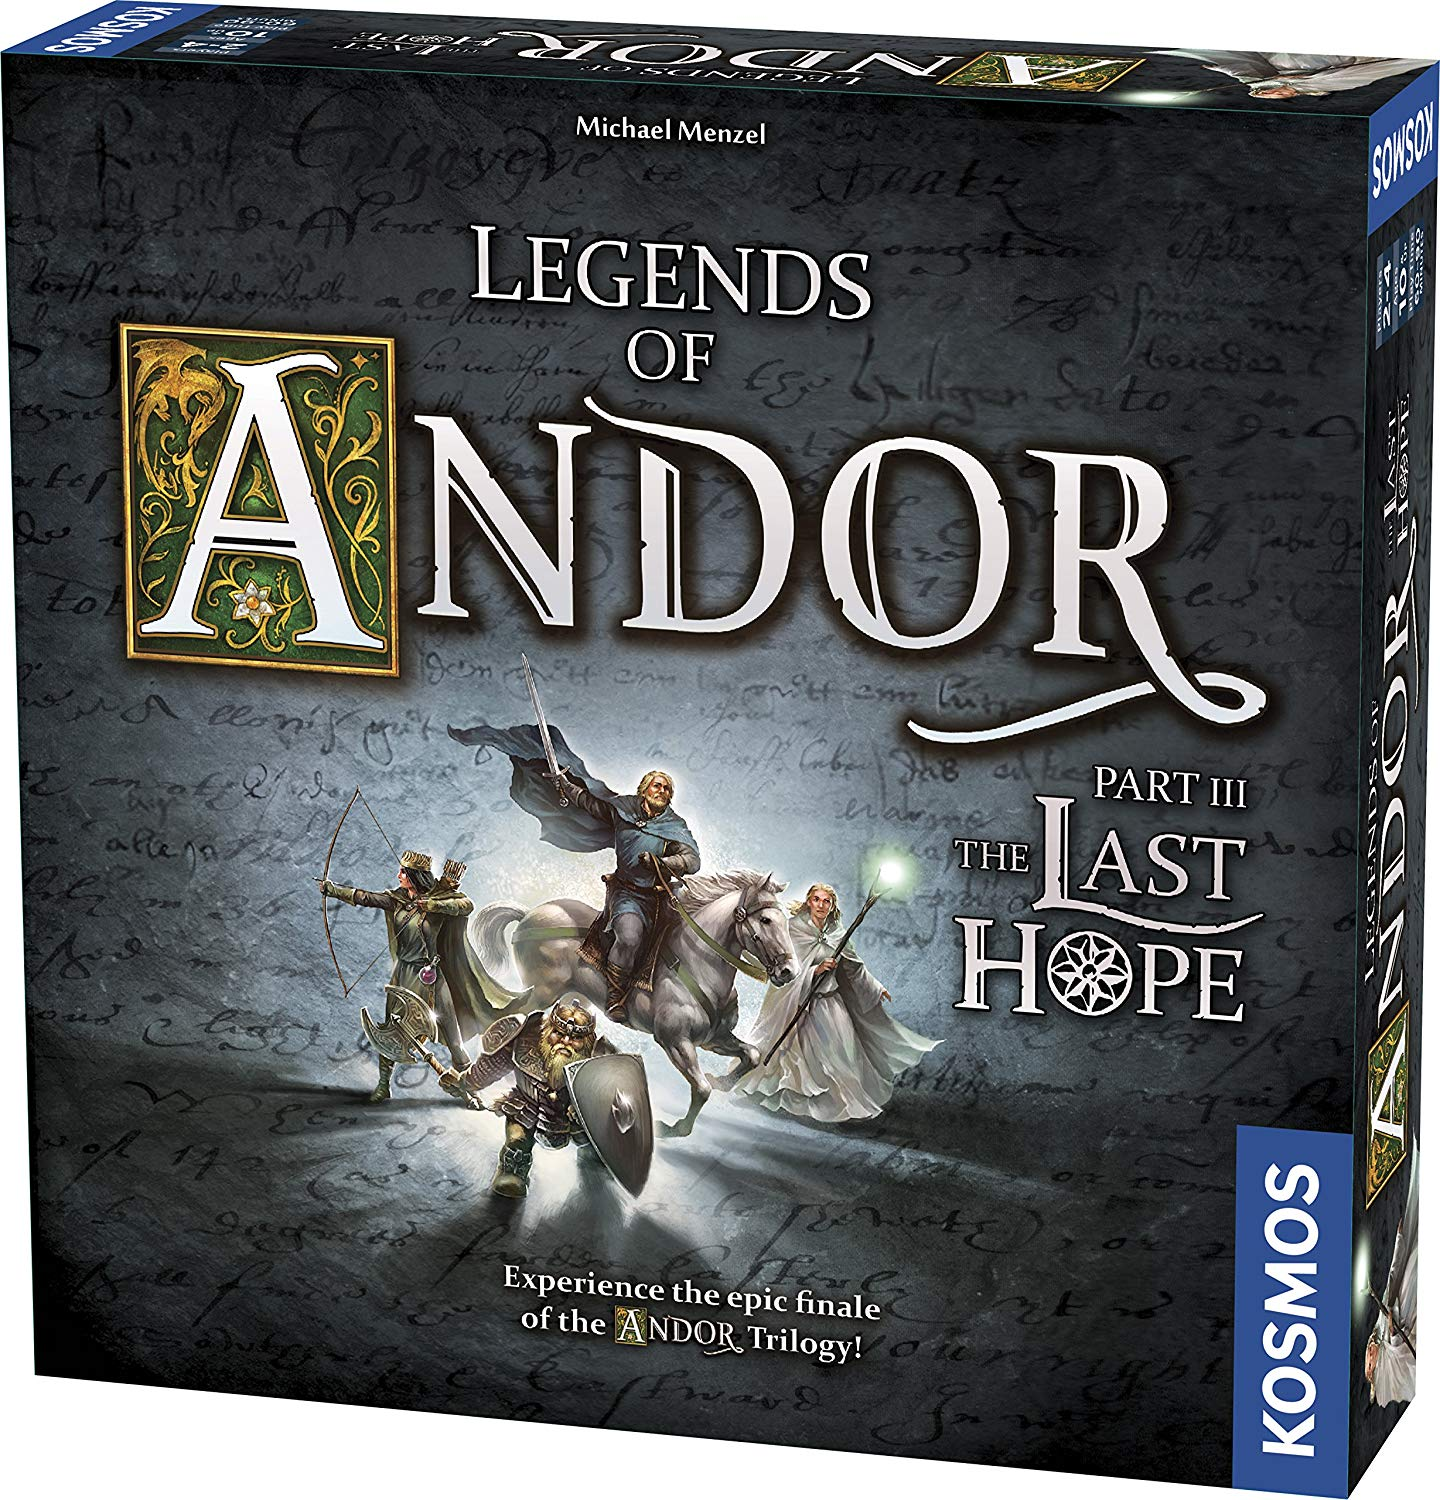 Thames and Kosmos 692803 III Legends of Andor Part 3 The Last Hope Game